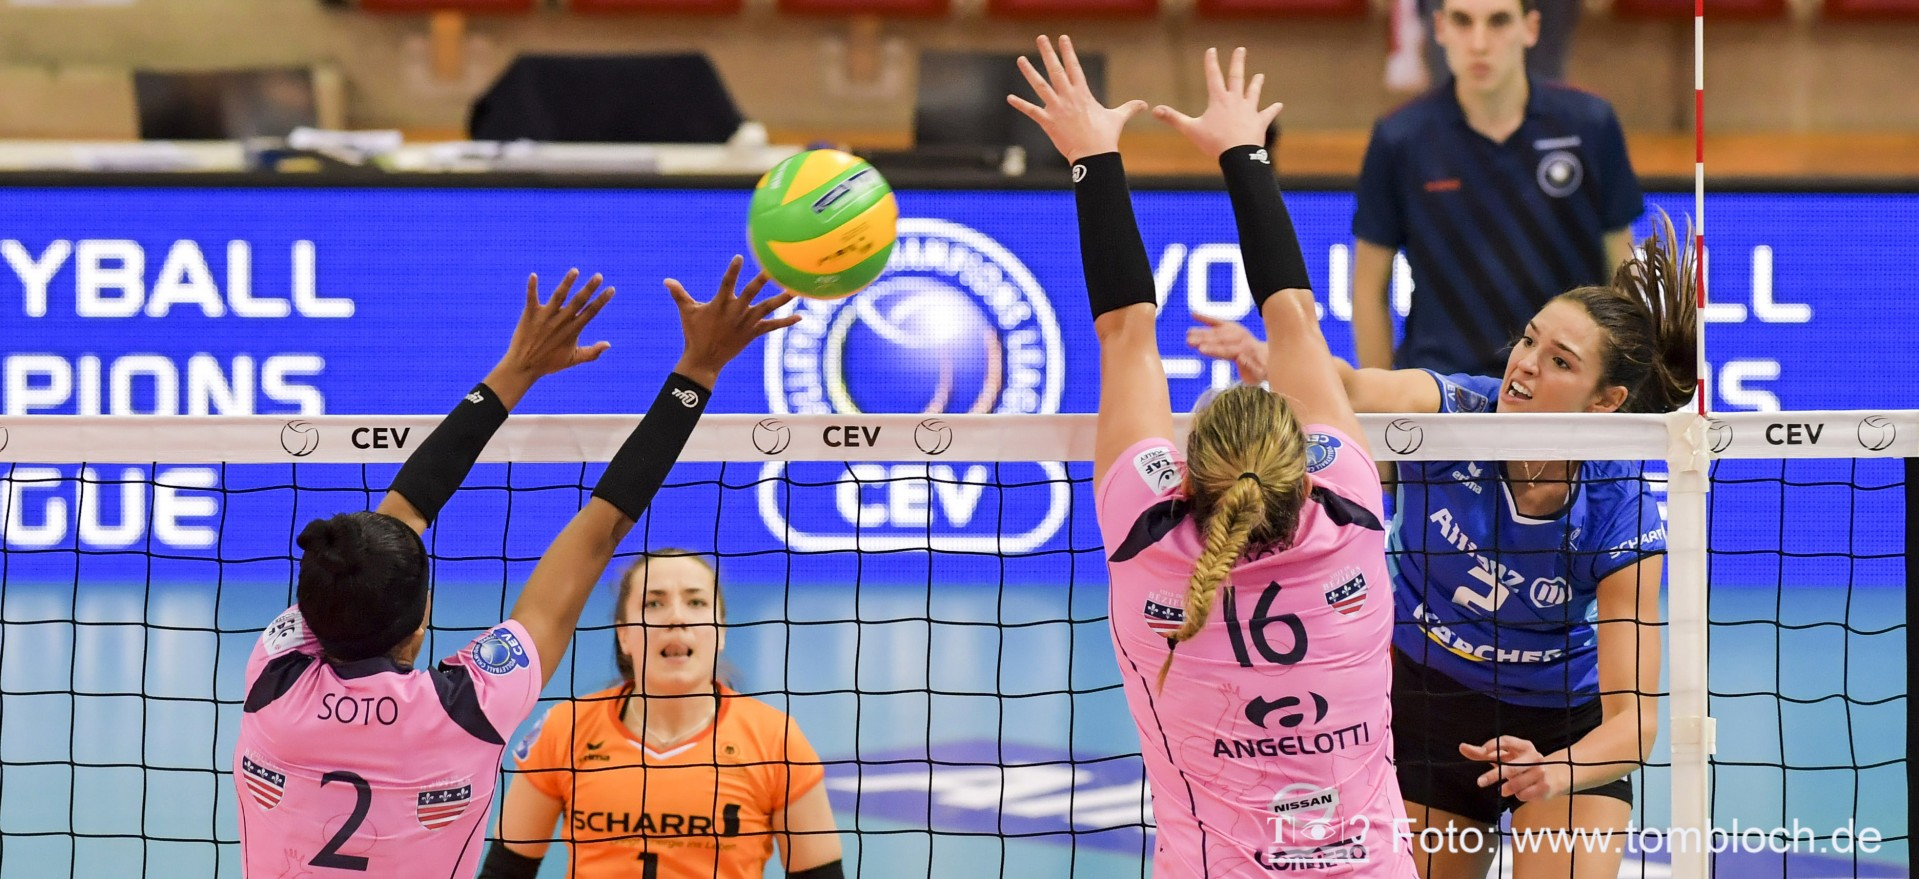 Wednesday, January 23: 2019 CEV Volleyball Champions League ...